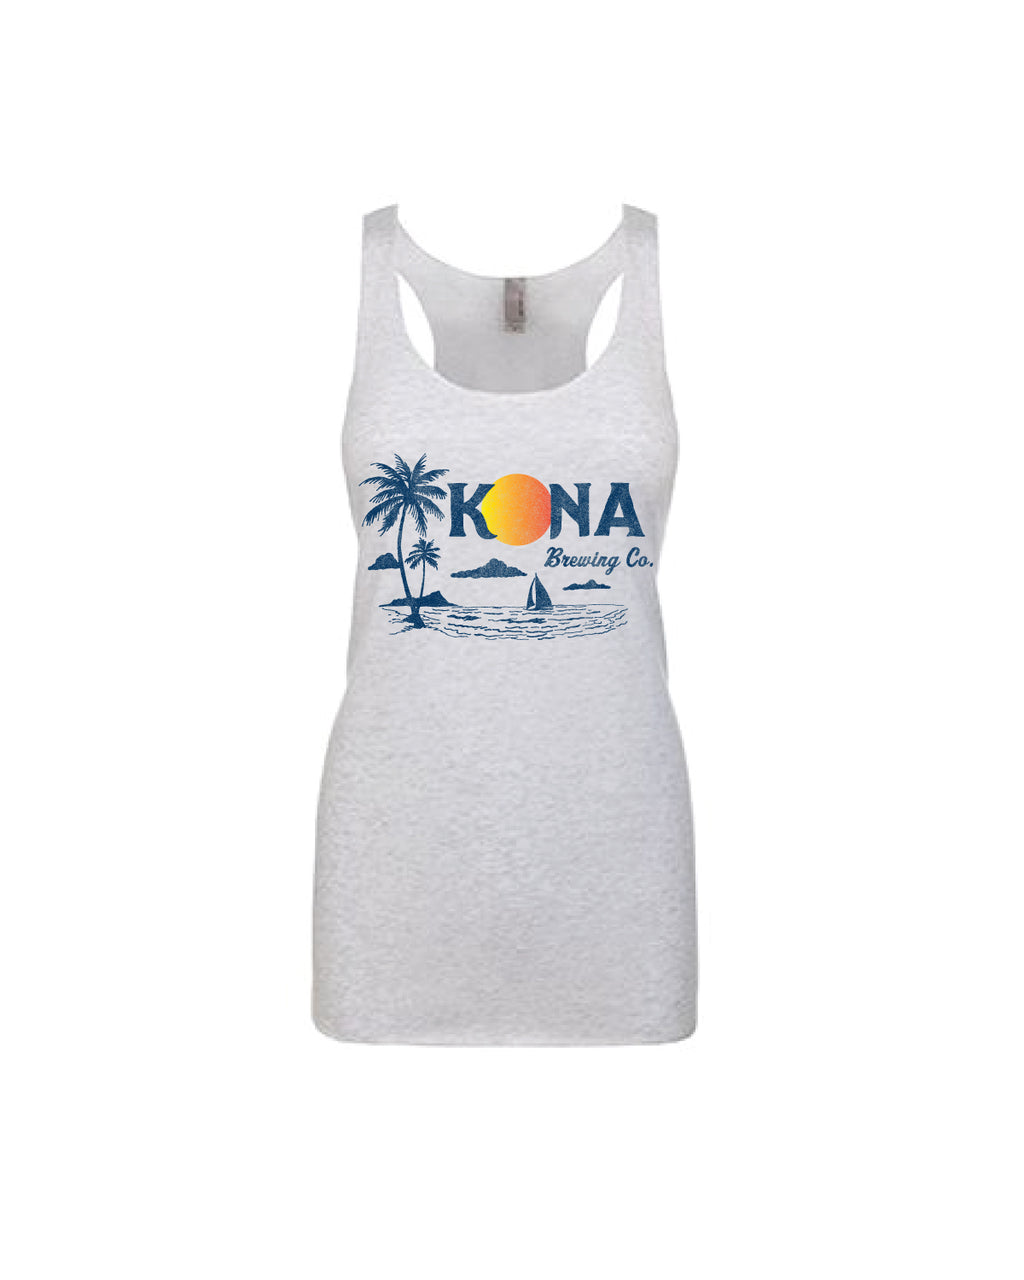 KONA SUNSET WOMENS TANK TOP- TRI BLEND WHITE